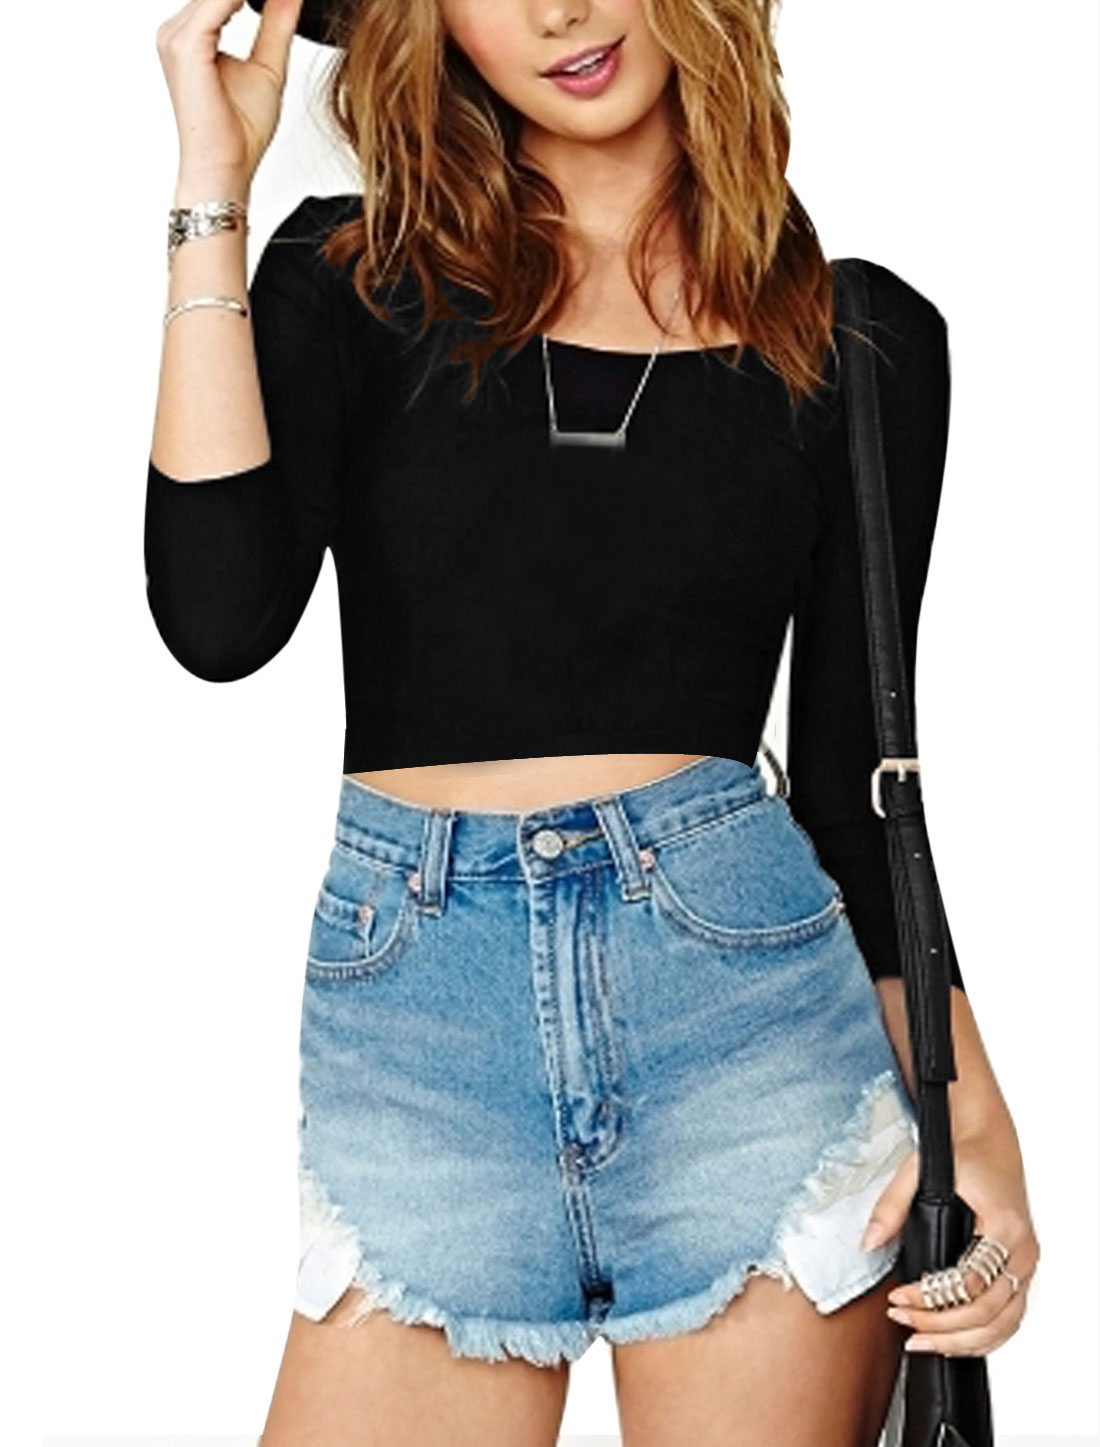 Lady Slim Fit Crossover Back Cut Out Midriff-Baring T-Shirt Black XL